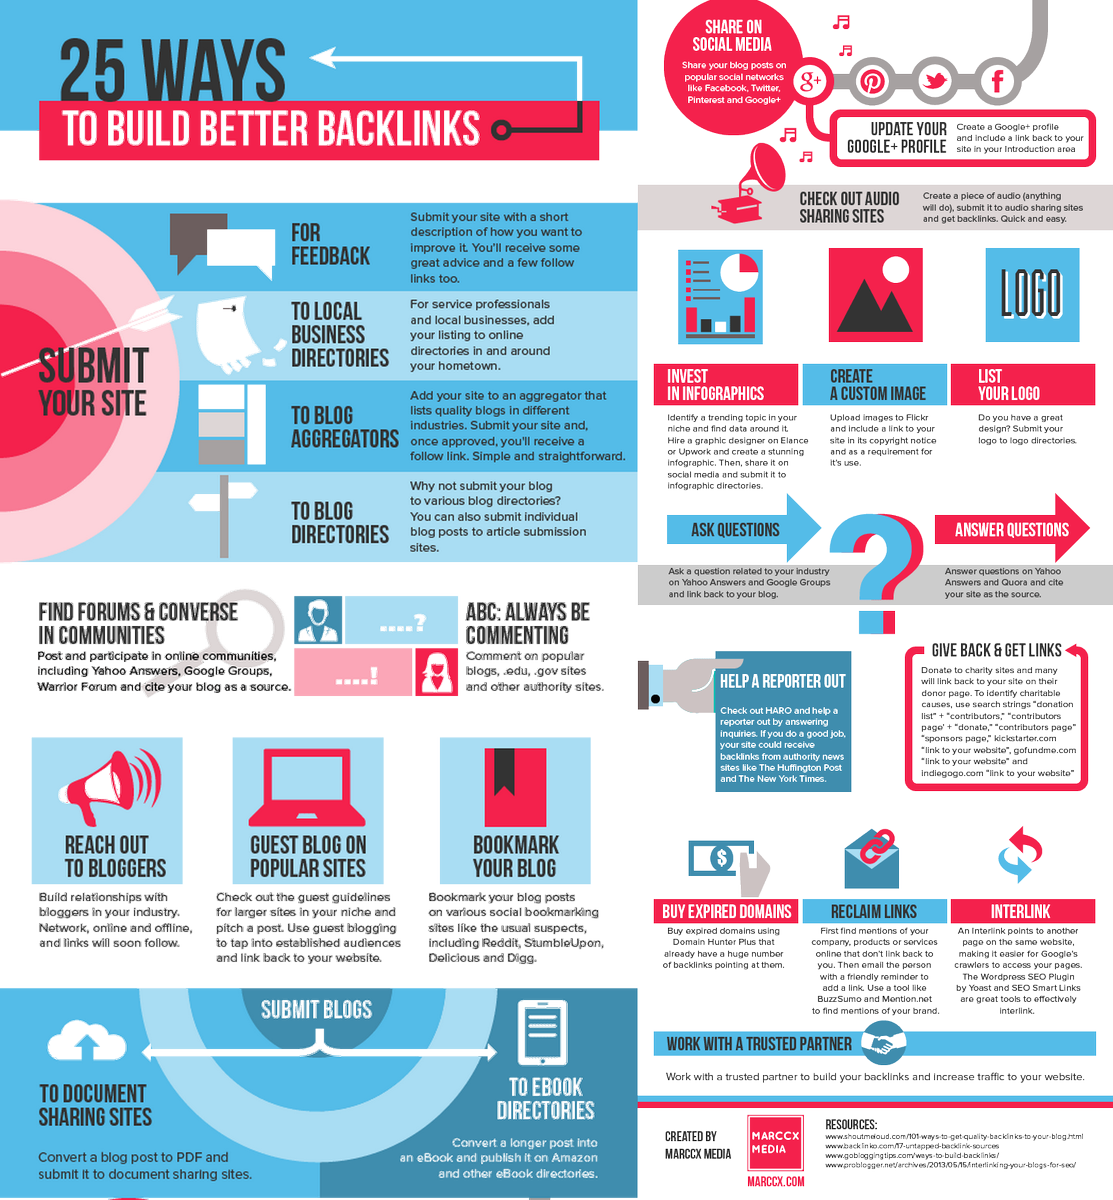 25 Ways To Build Better Backlinks [Infographic] #SEO #DigitalMarketing #GrowthHacking<br>http://pic.twitter.com/l2LXrCpdg3